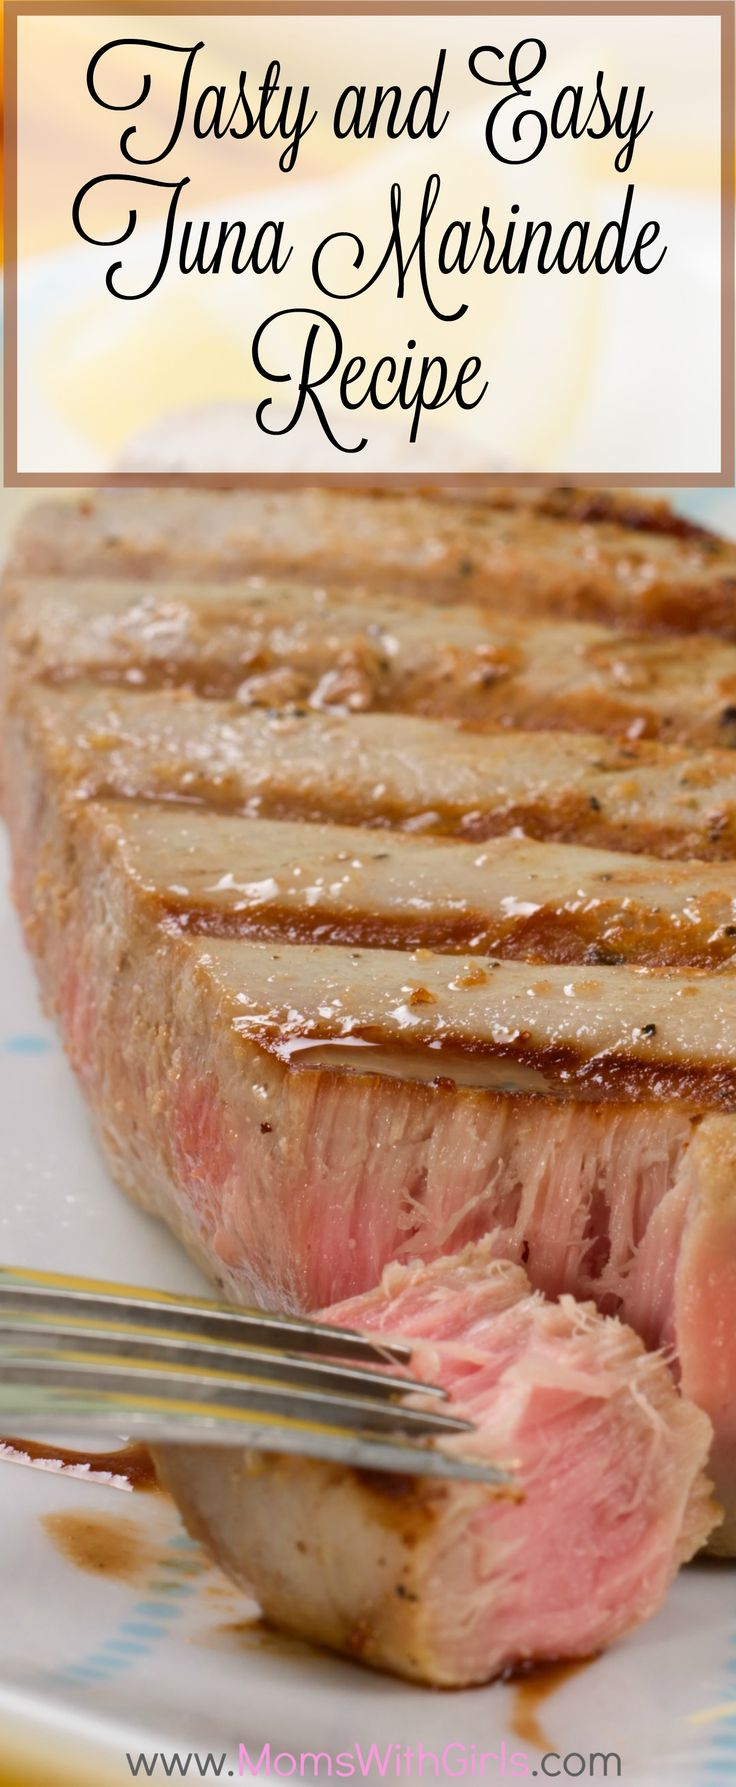 Here is a great tasting tuna steak marinade recipe that you and your guests would enjoy eating.